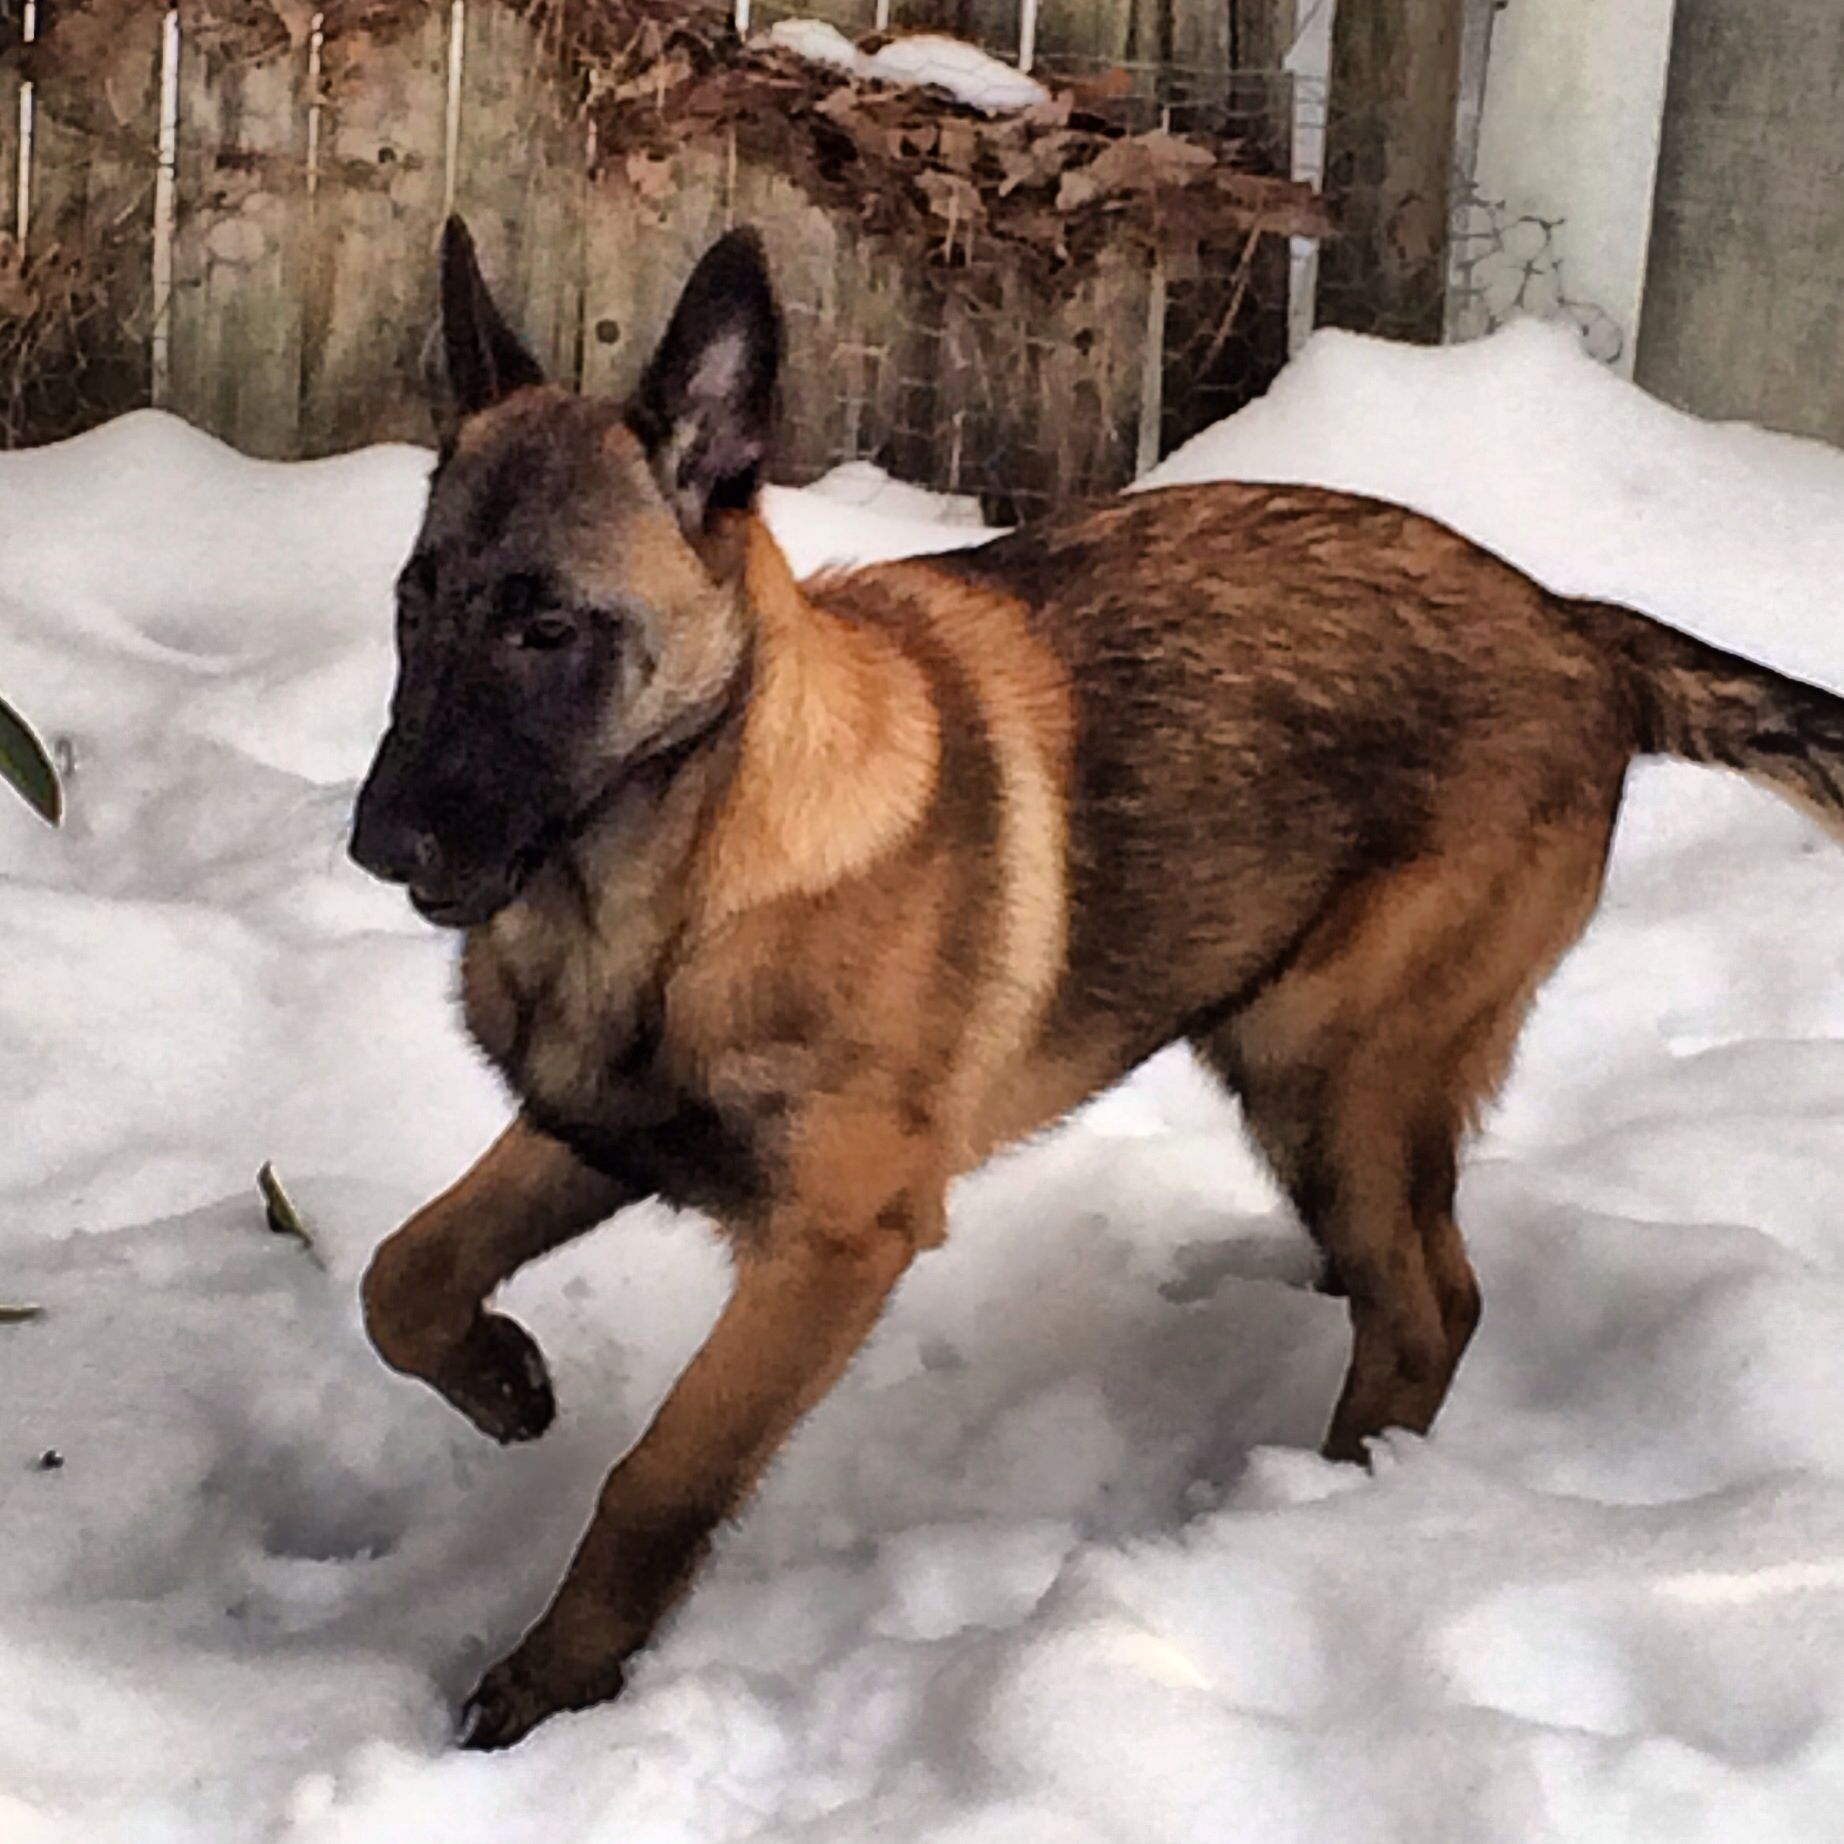 This is my 4 month old Belgian Malinois. Her name is Jewel